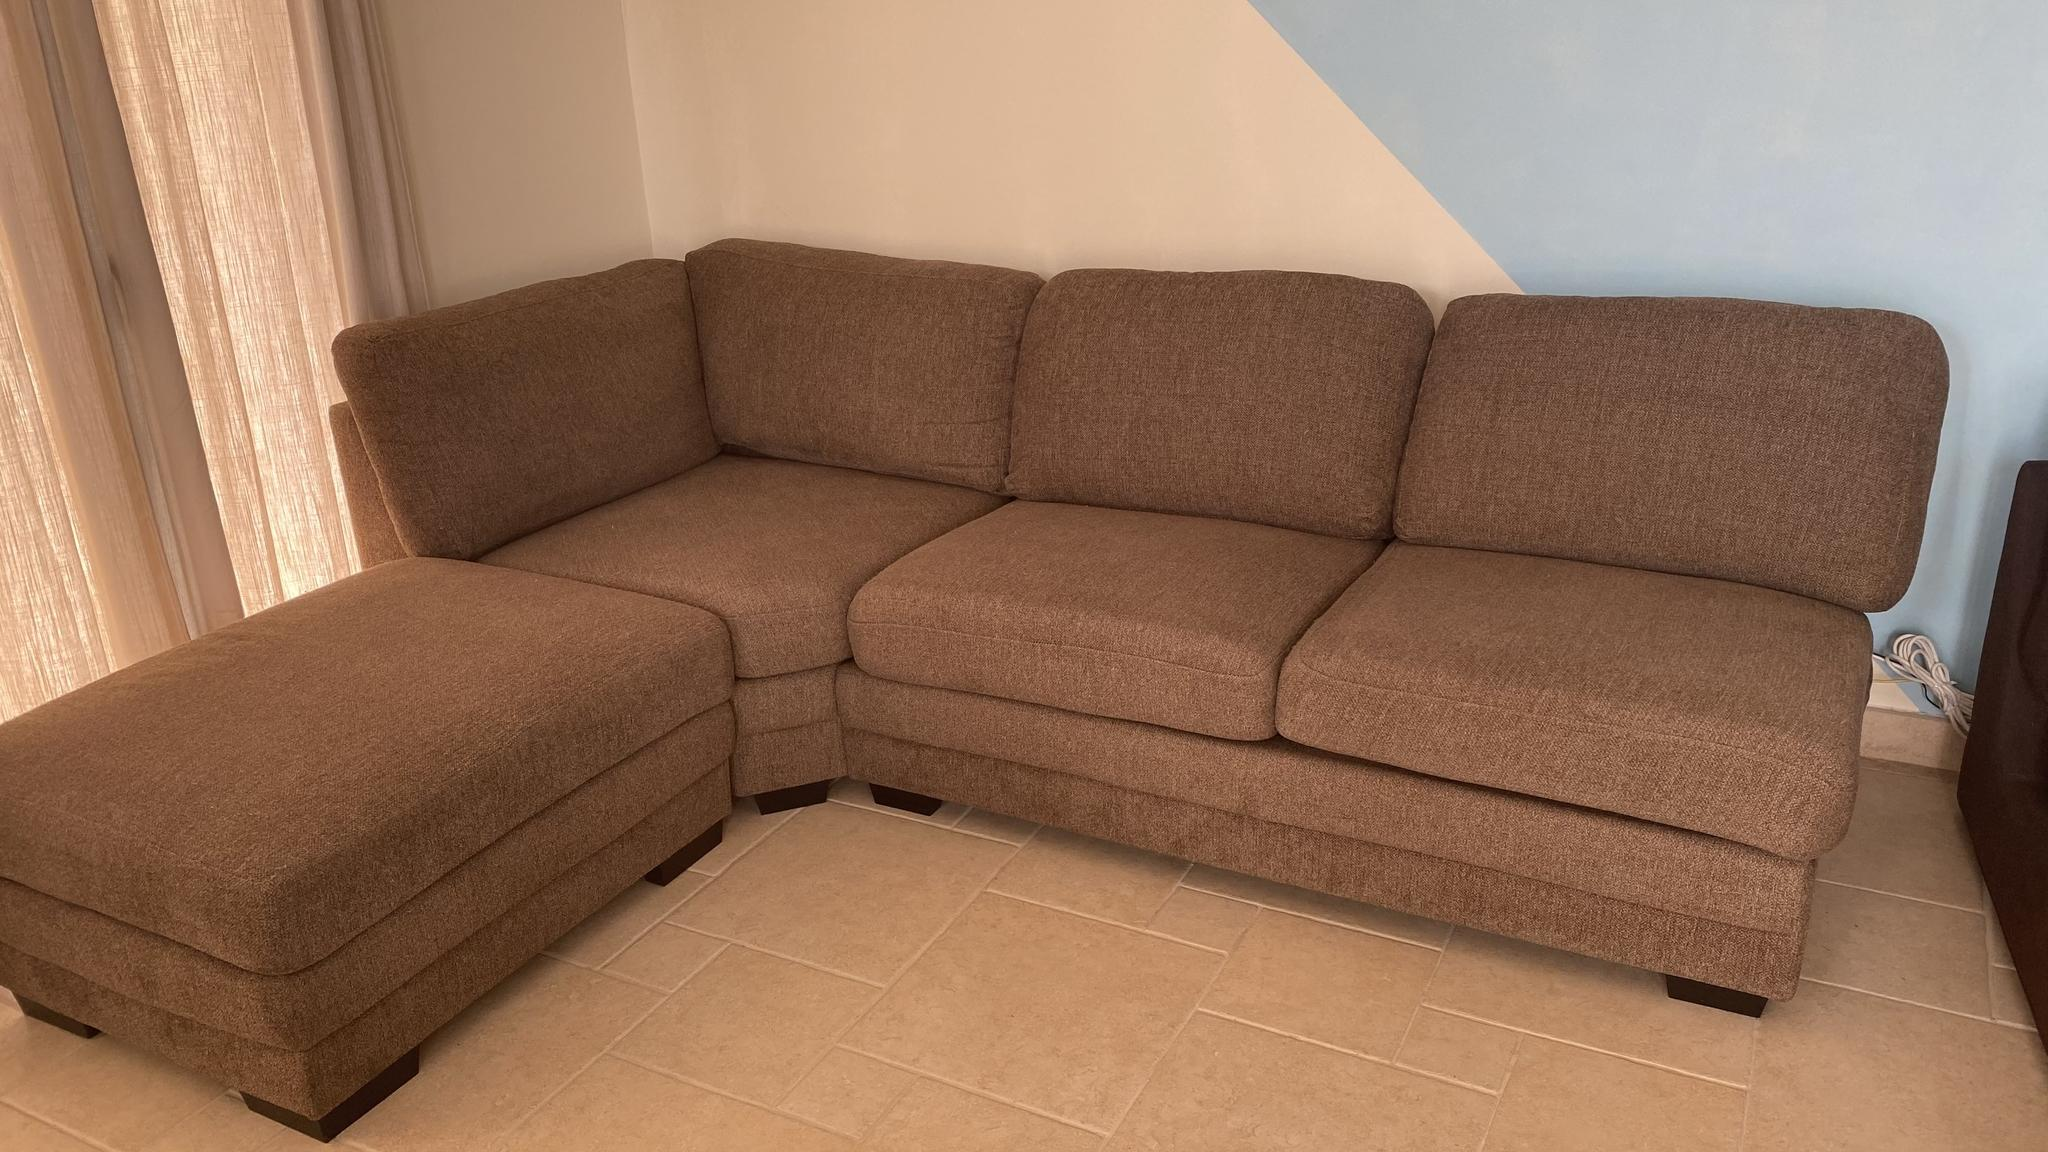 Brown Sofa - Used for less than 1 year